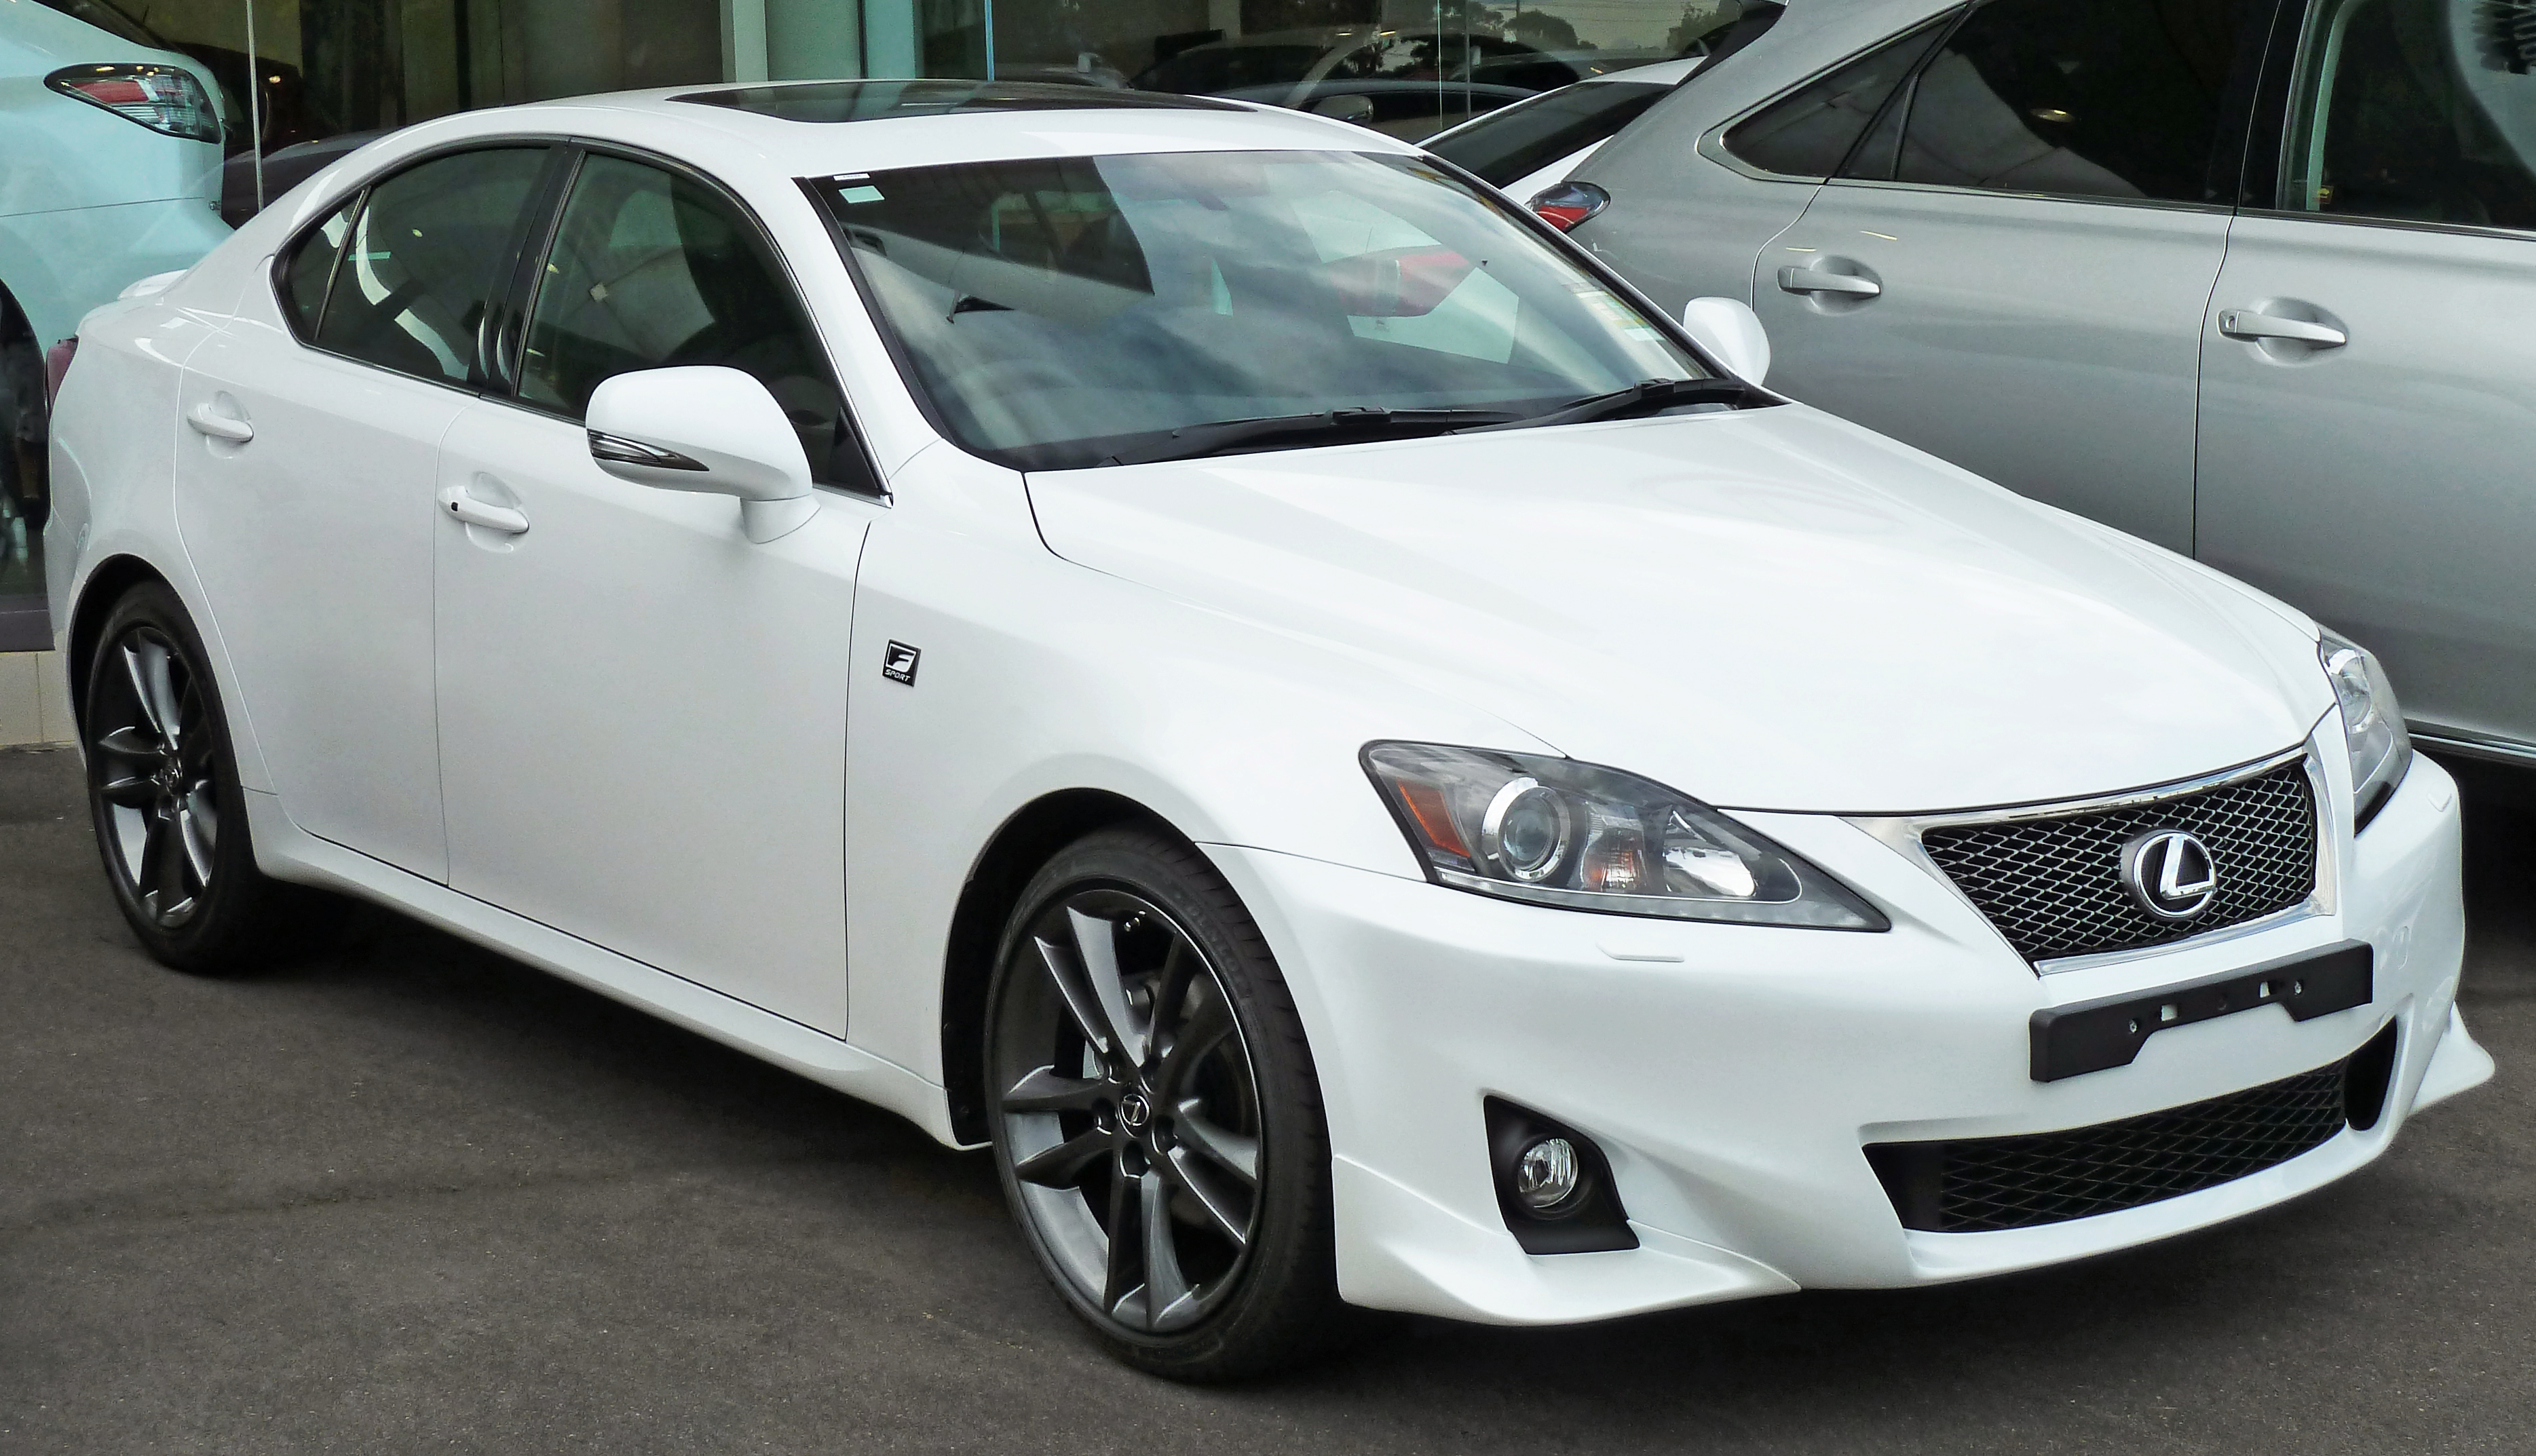 2010 Lexus Is F #13